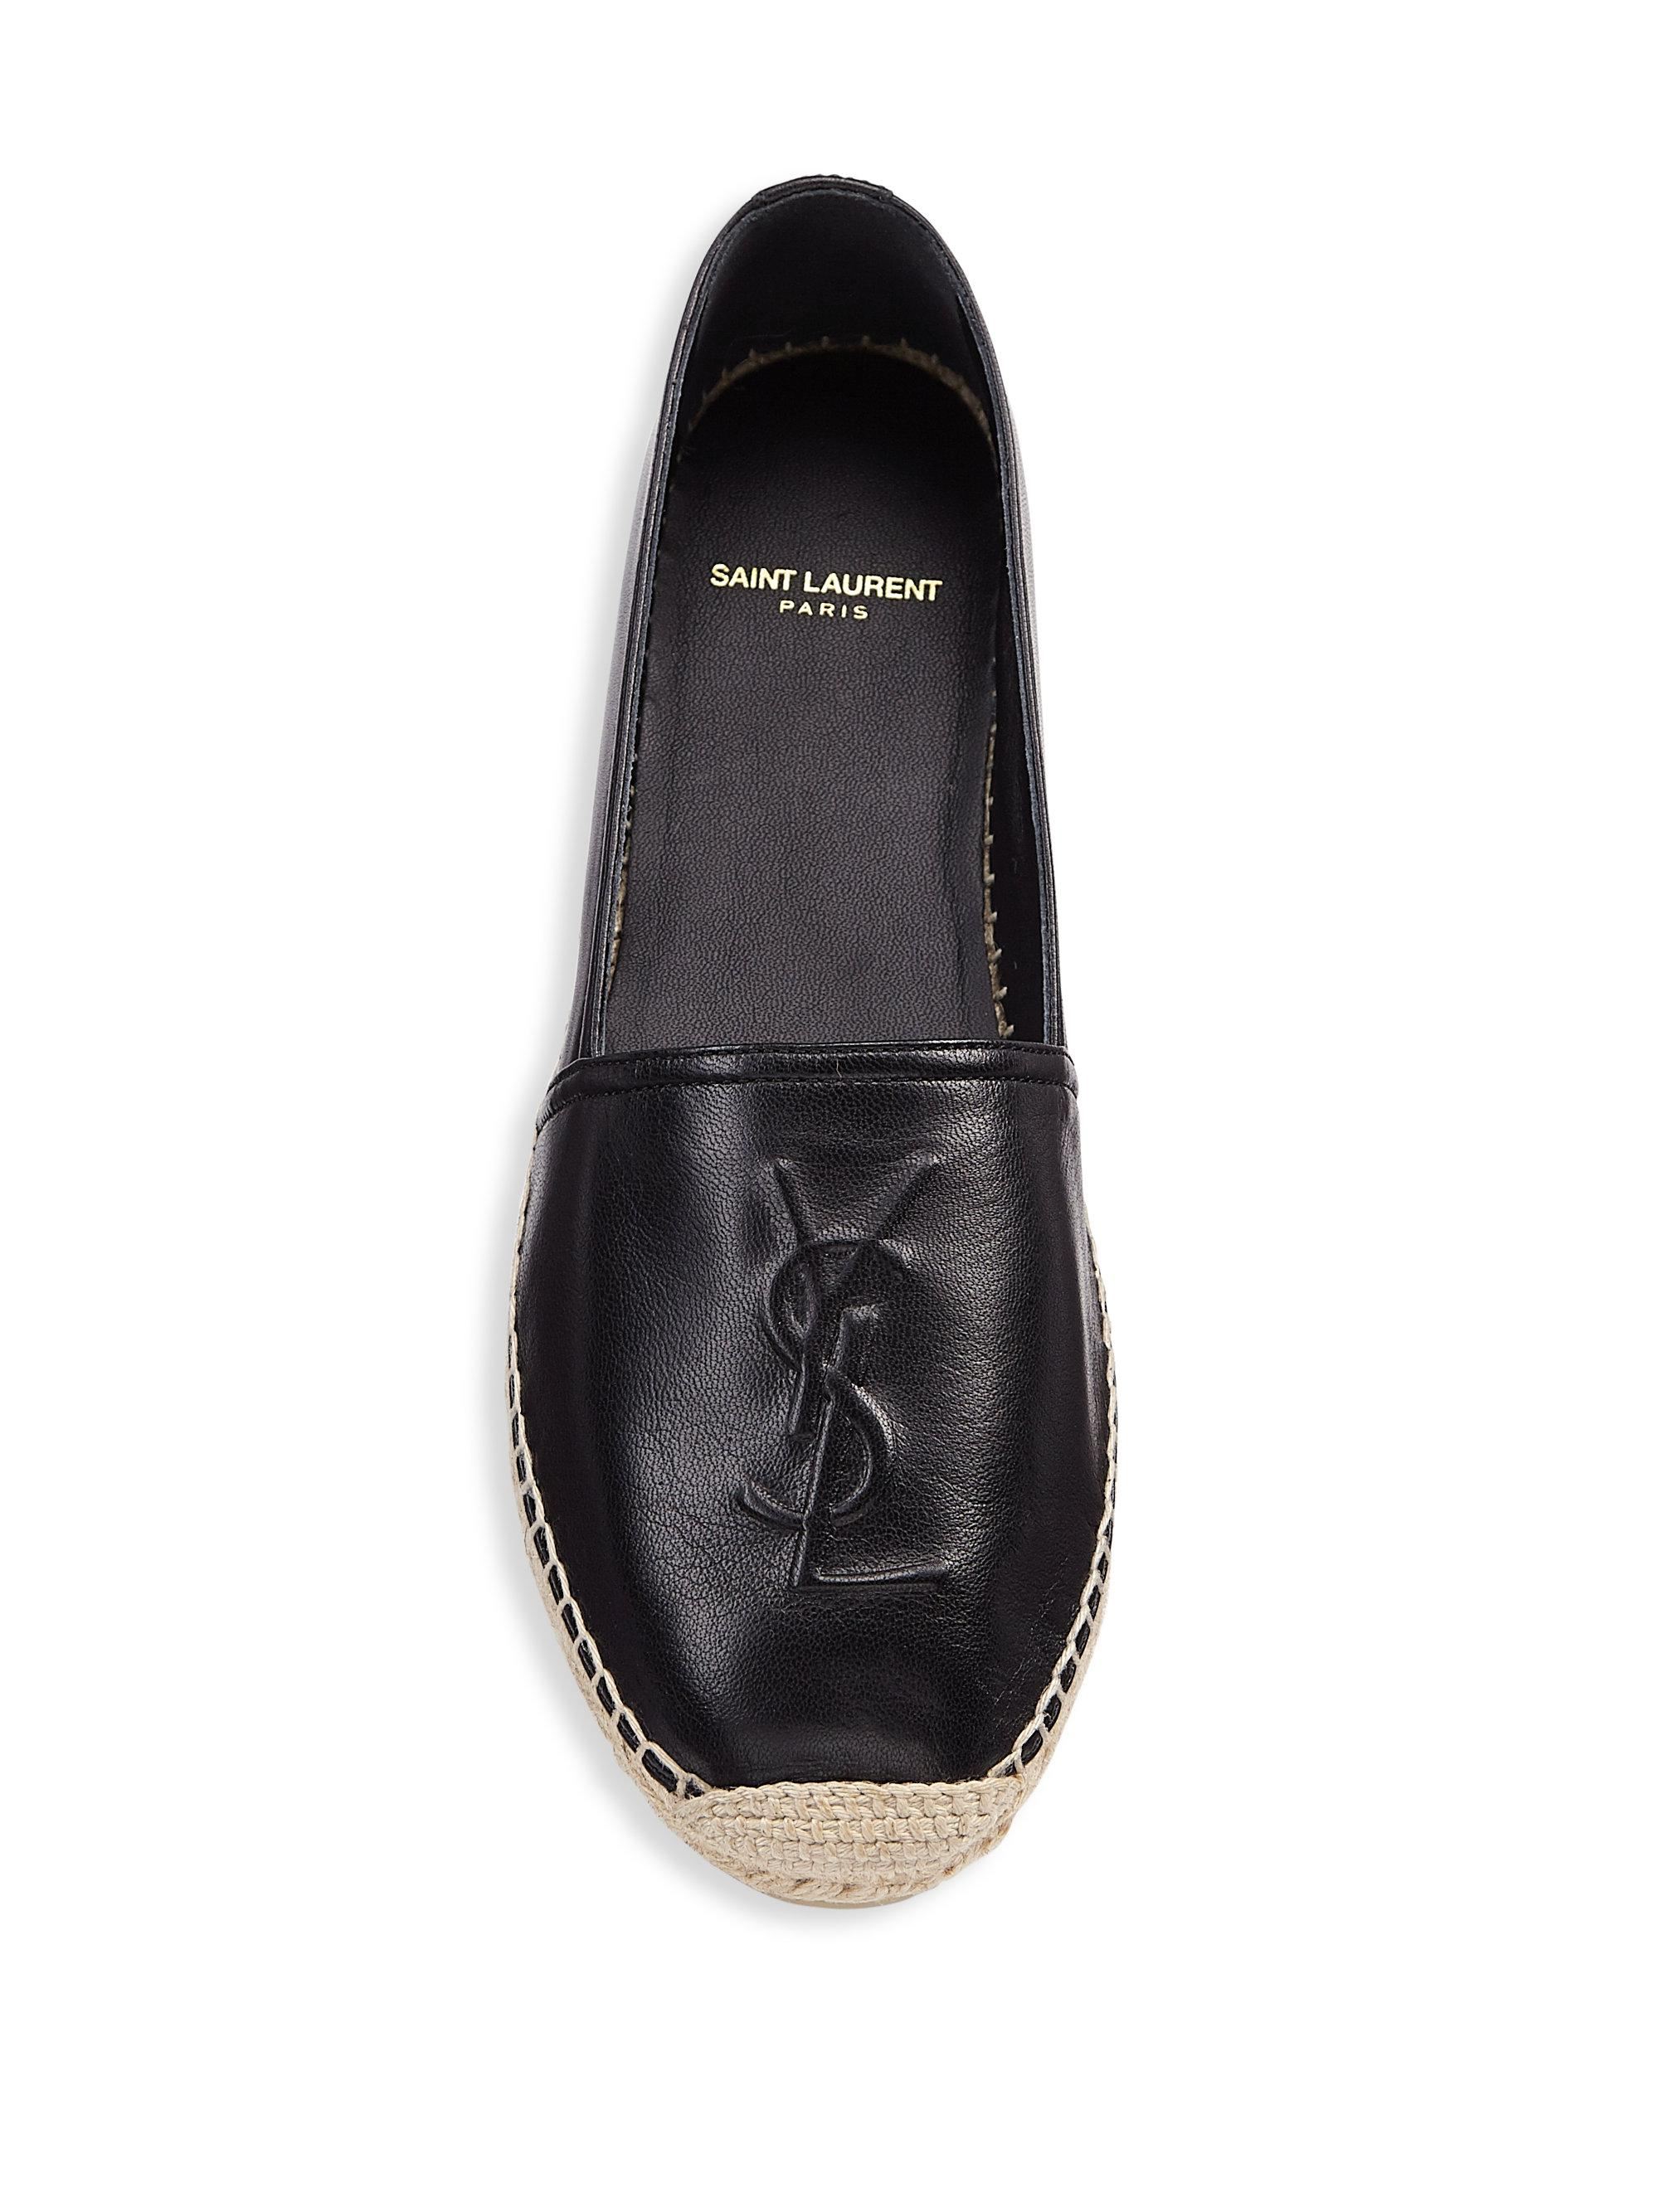 Lyst Saint Laurent Ysl Logo Leather Espadrilles In Black